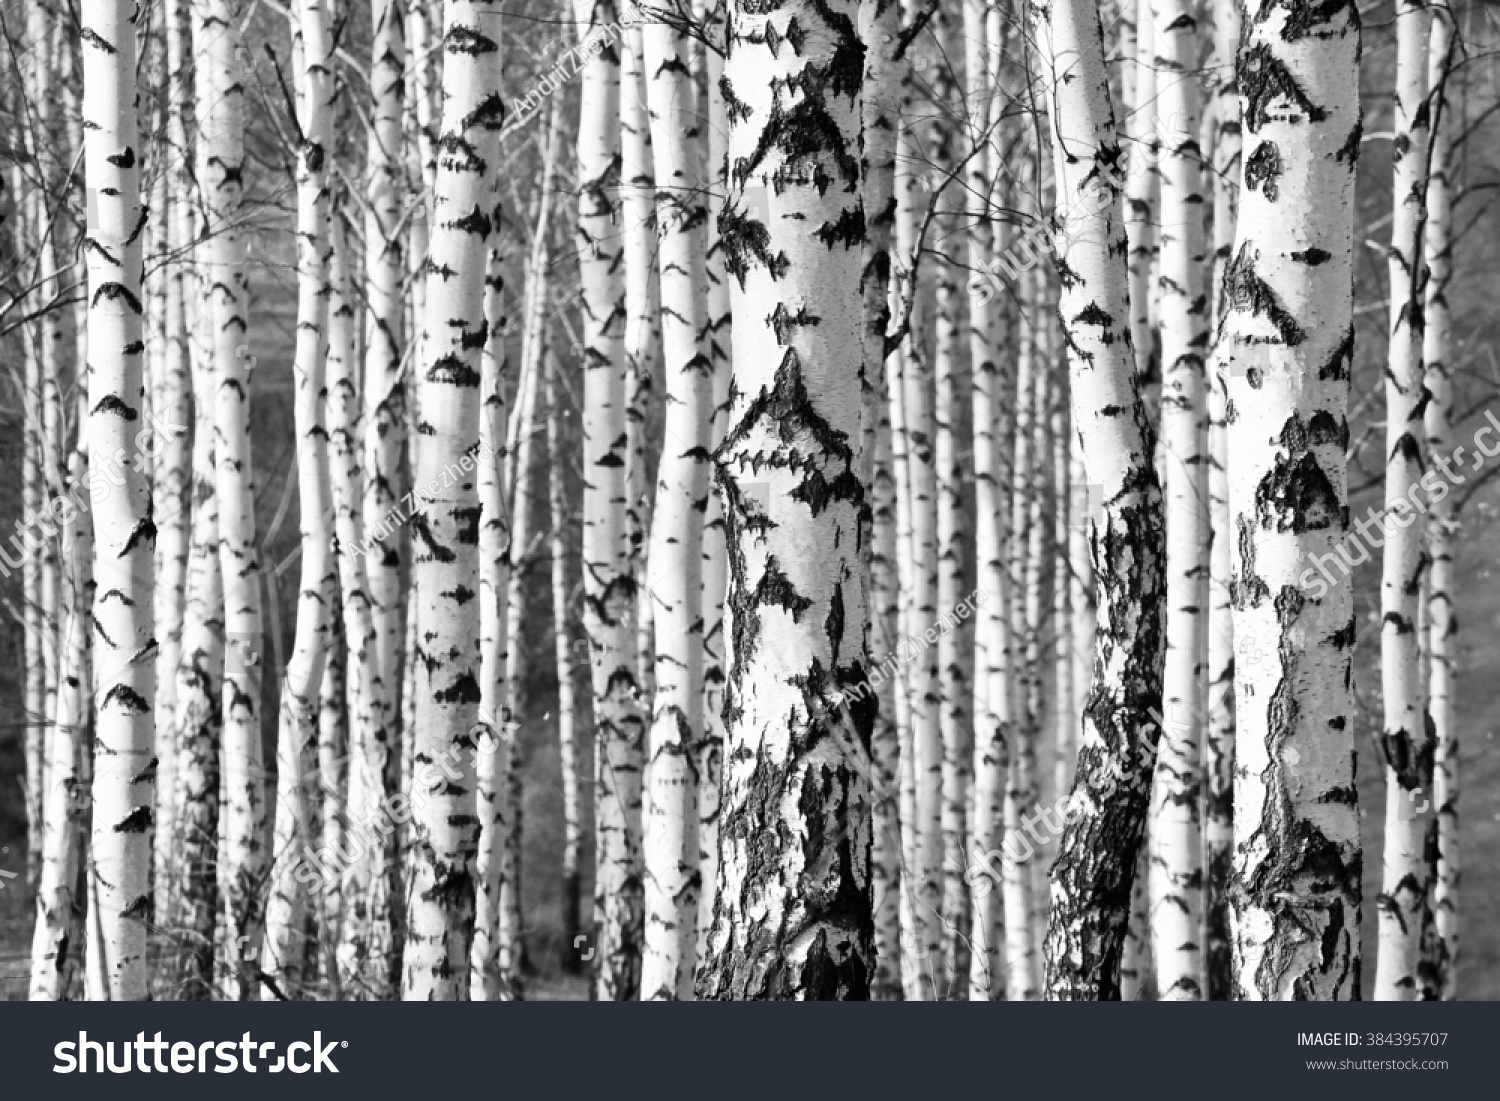 birch trees trunks - black and white natural background